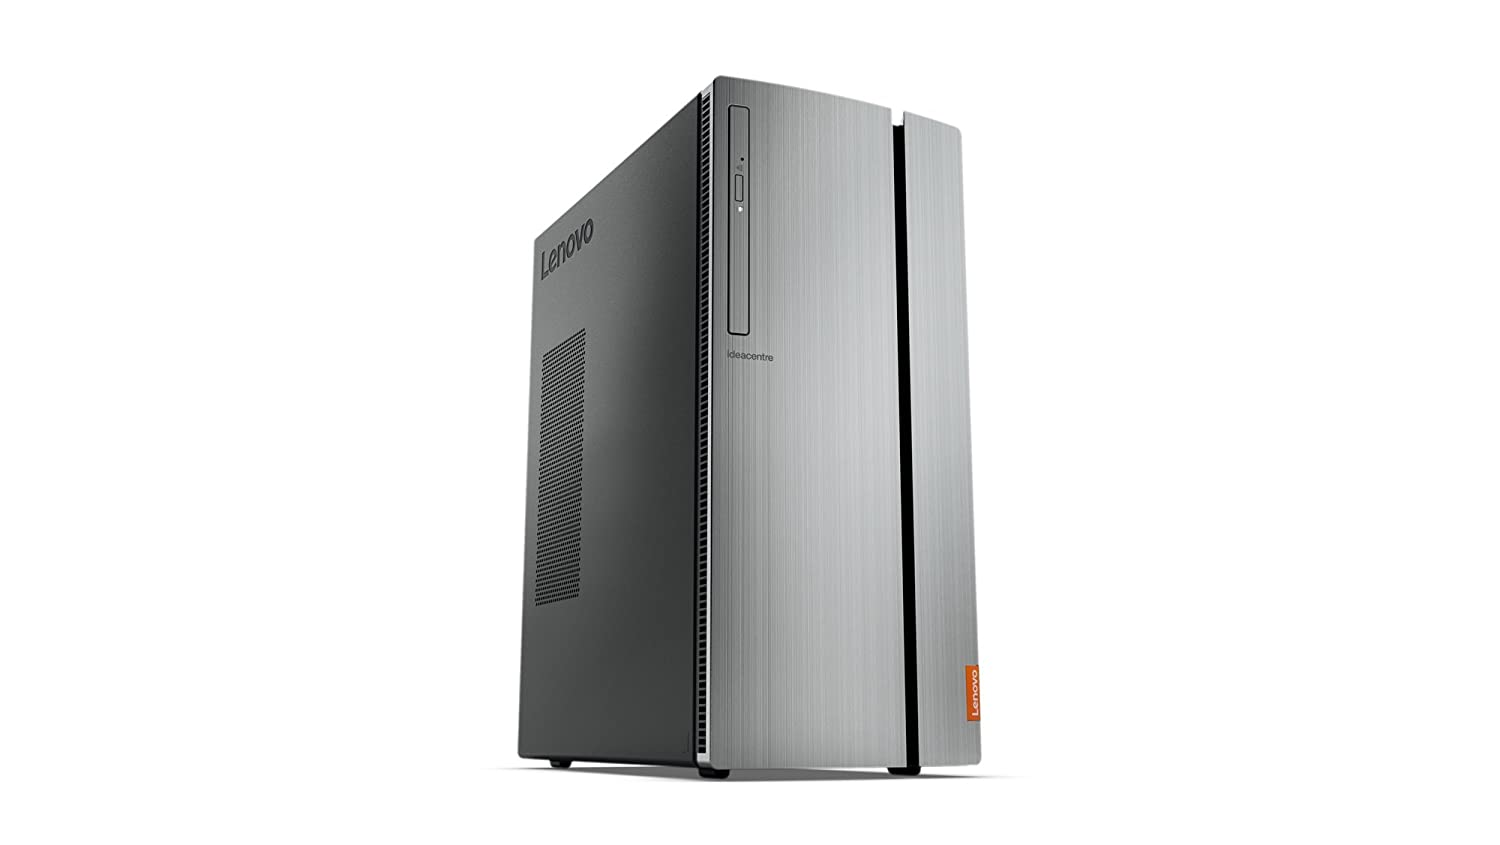 Lenovo IdeaCentre 720 3,2 GHz AMD Ryzen 5 1400 Negro, Plata Torre PC - Ordenador de sobremesa (3,2 GHz, AMD Ryzen 5, 8 GB, 2256 GB, DVD±RW, Windows 10 Home)